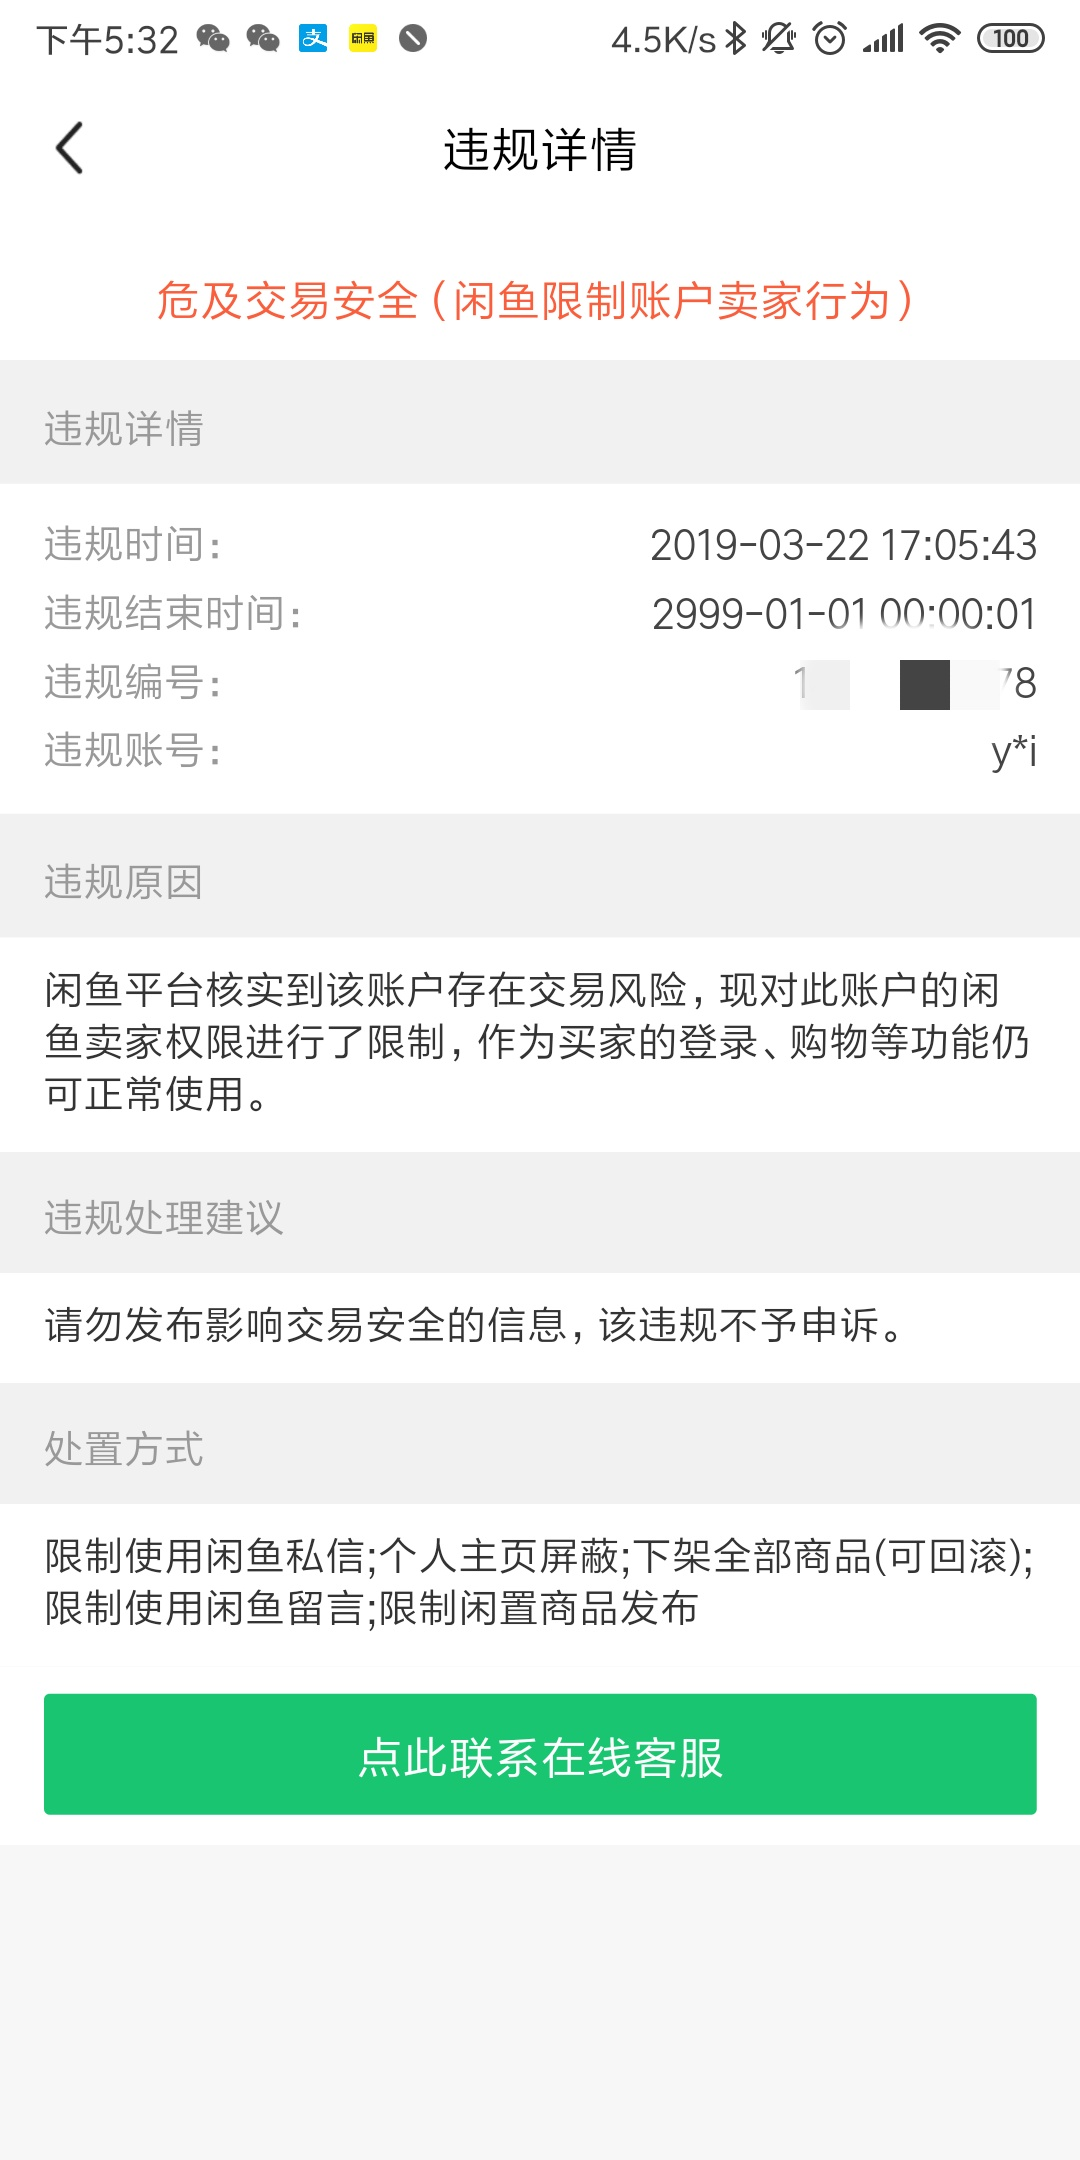 Screenshot_2019-03-22-17-32-35-144_com.taobao.idl.png